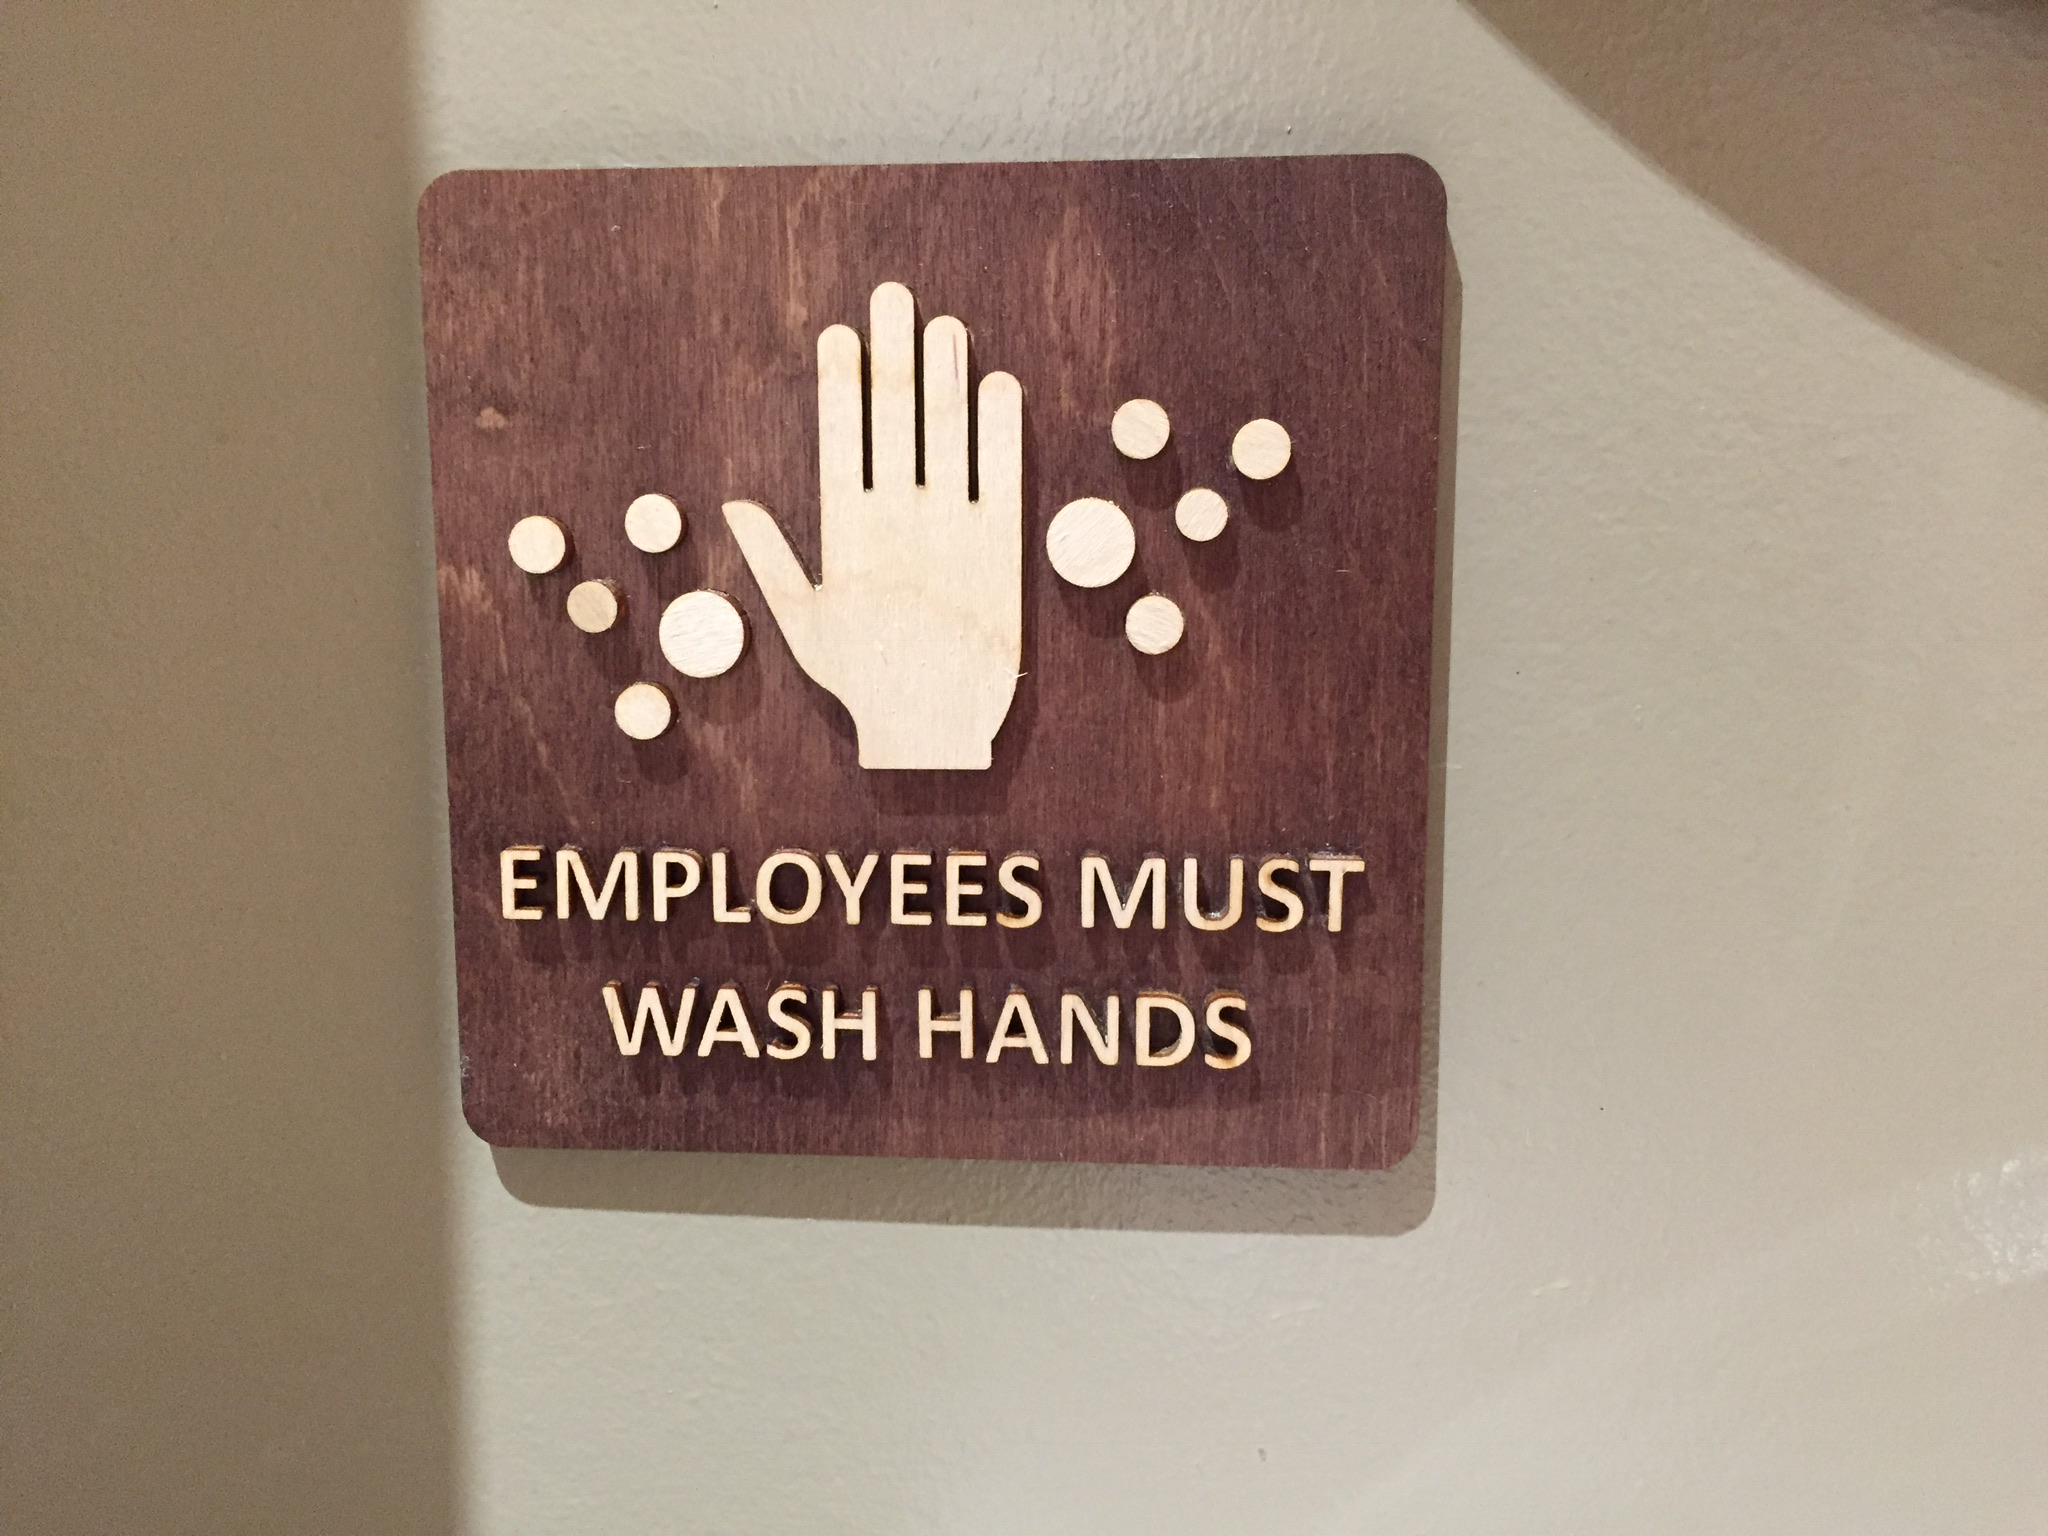 Employees Must Wash Hands.jpg